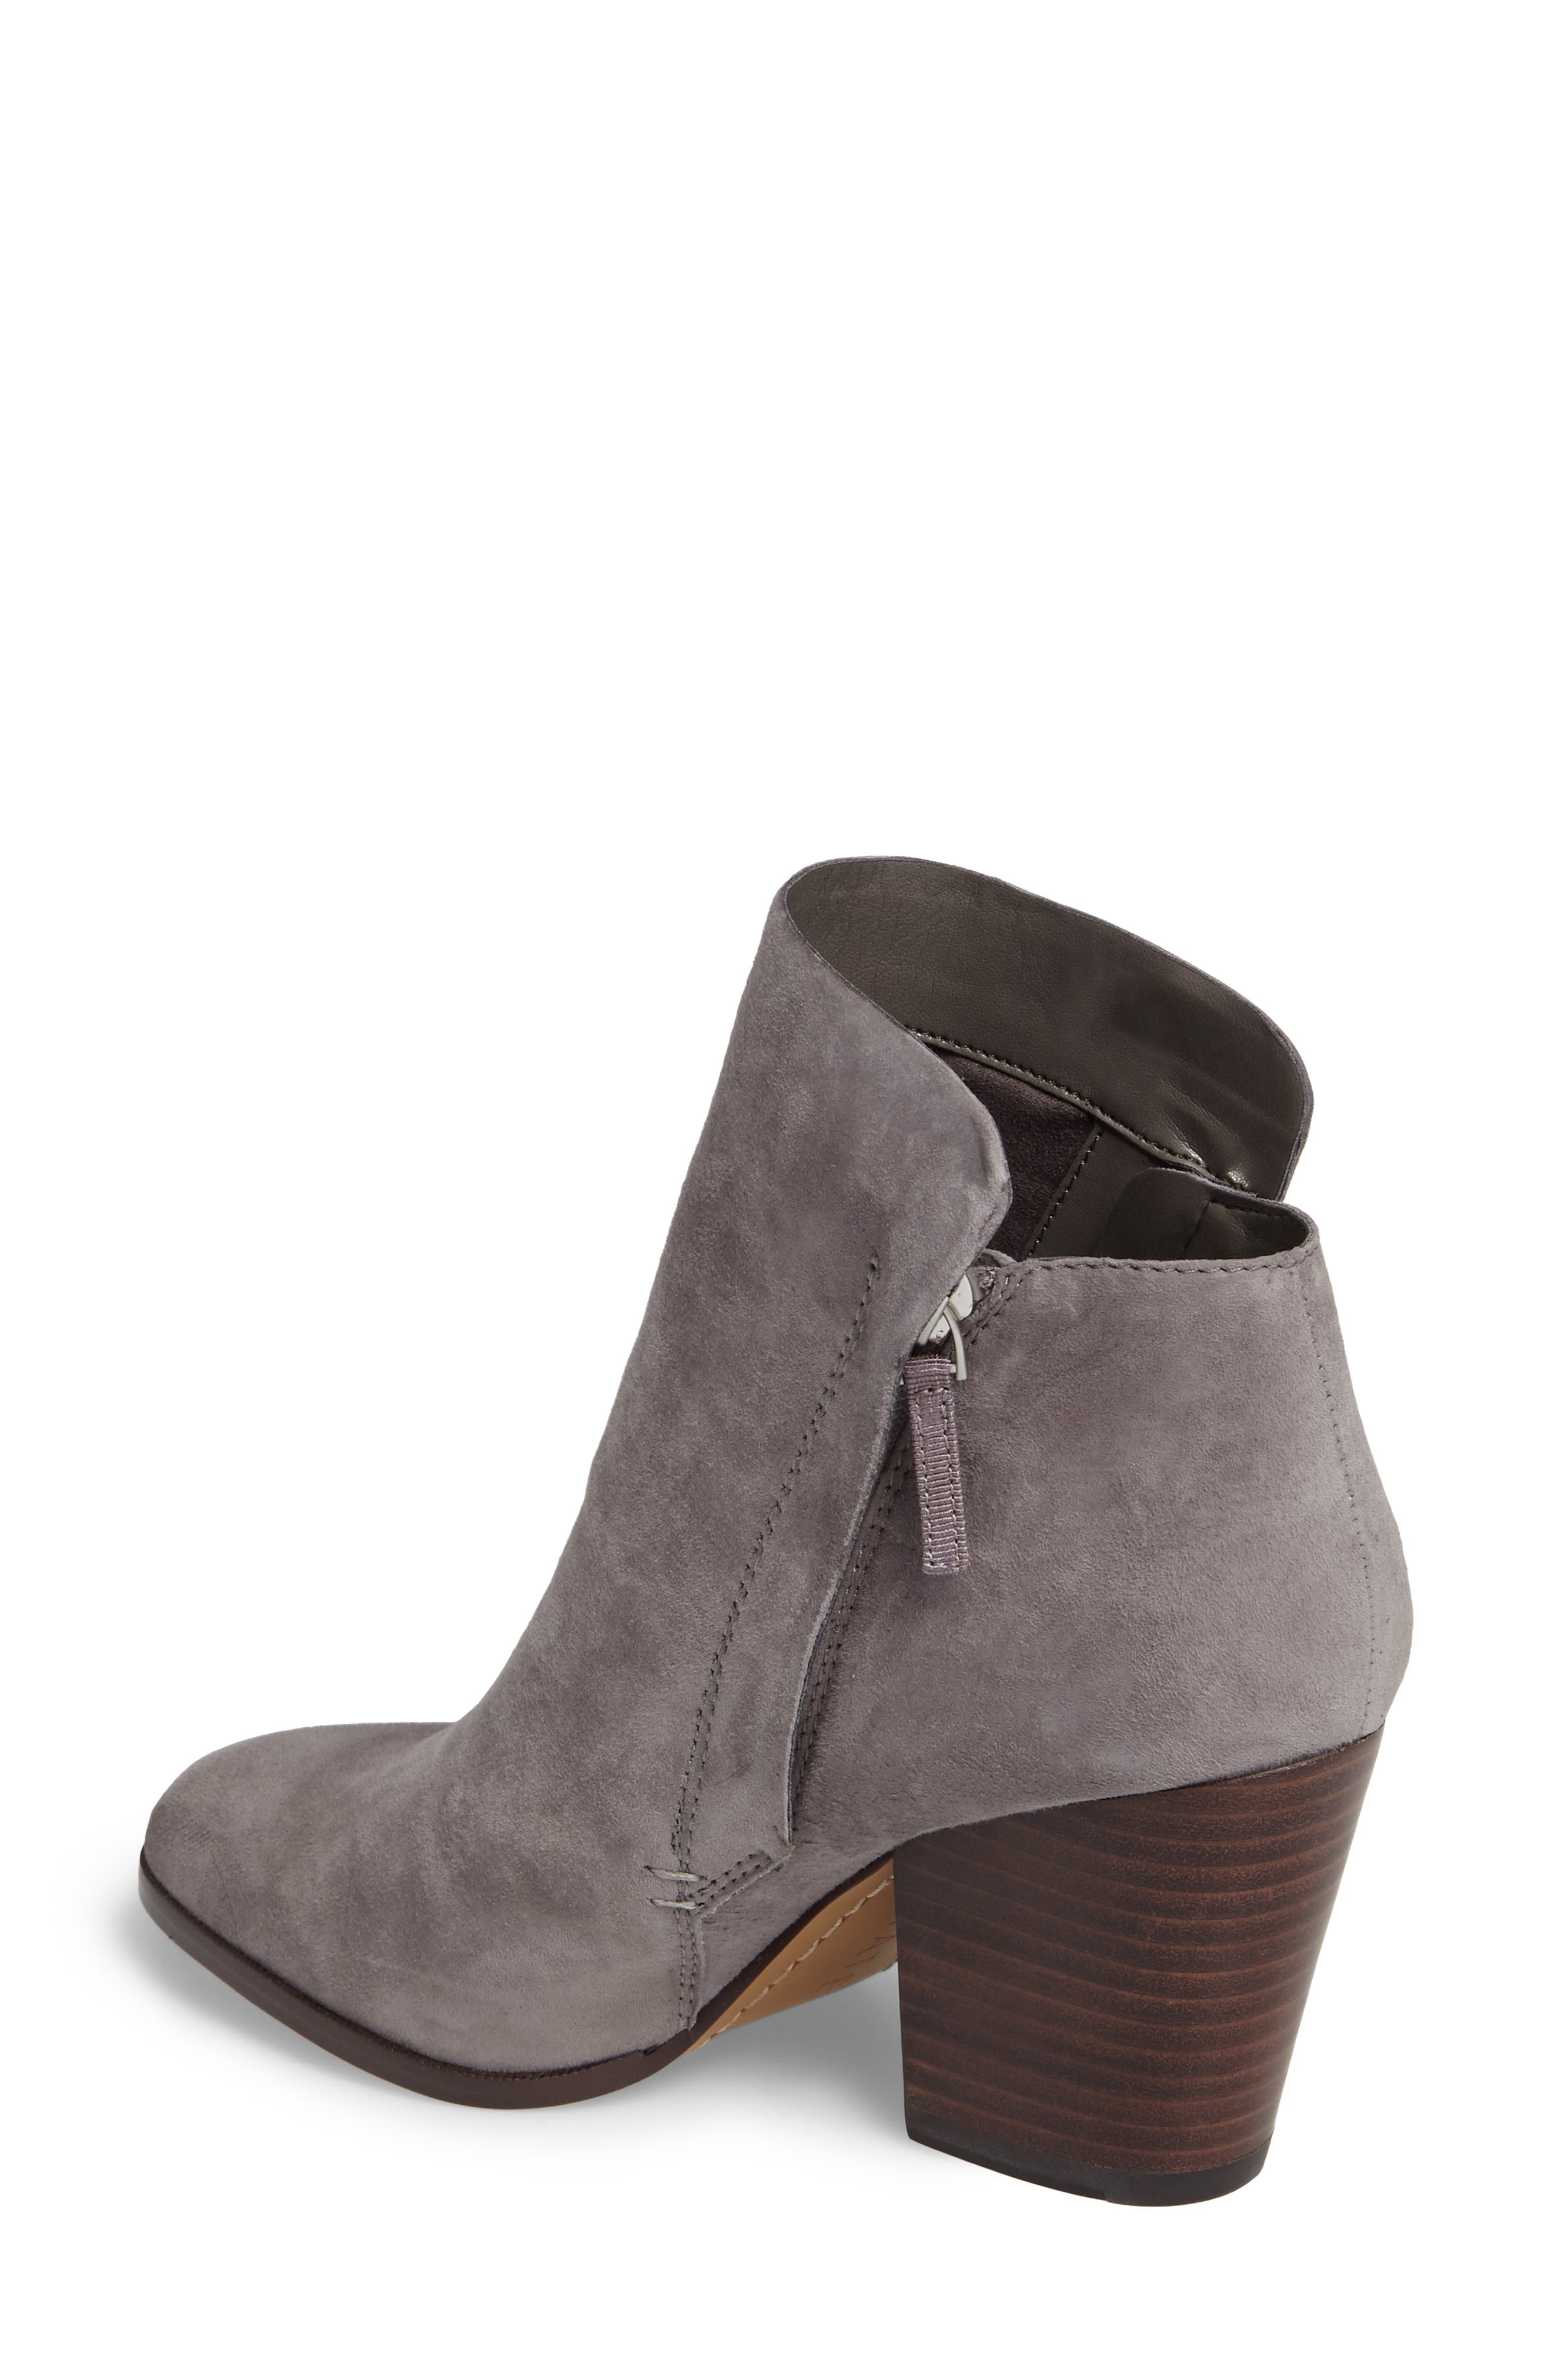 Taila Angle Zip Bootie,                             Alternate thumbnail 2, color,                             Iron Suede